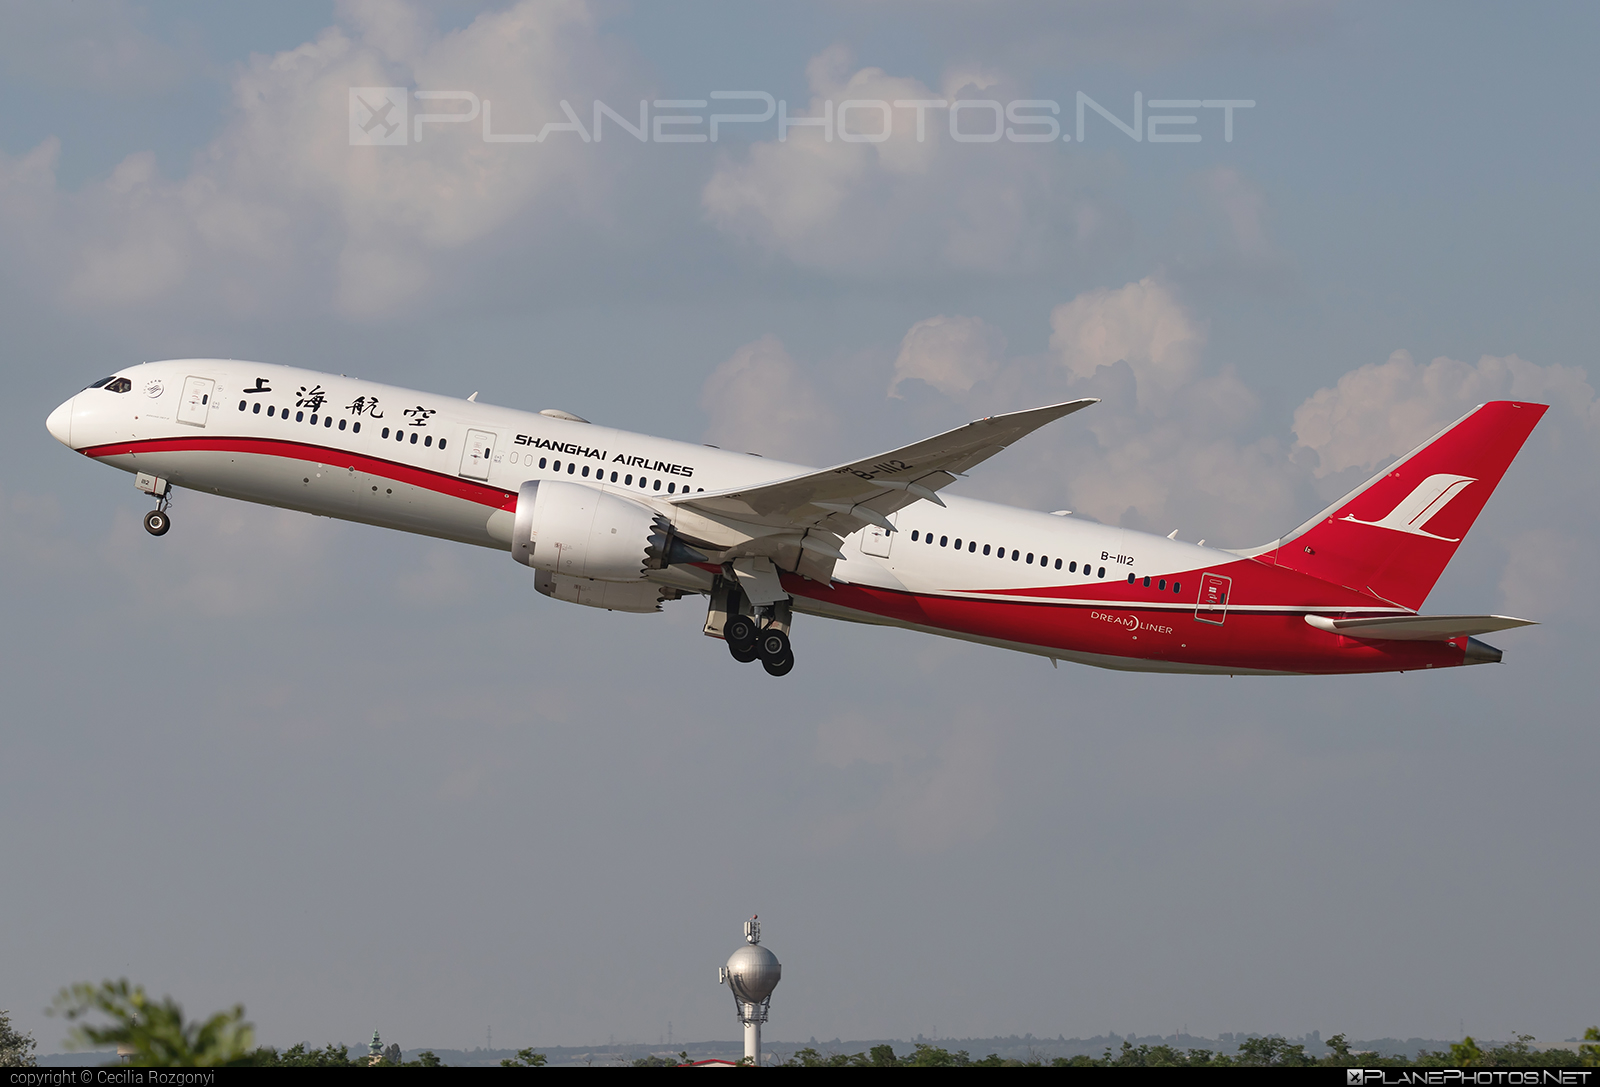 Boeing 787-9 Dreamliner - B-1112 operated by Shanghai Airlines #b787 #boeing #boeing787 #dreamliner